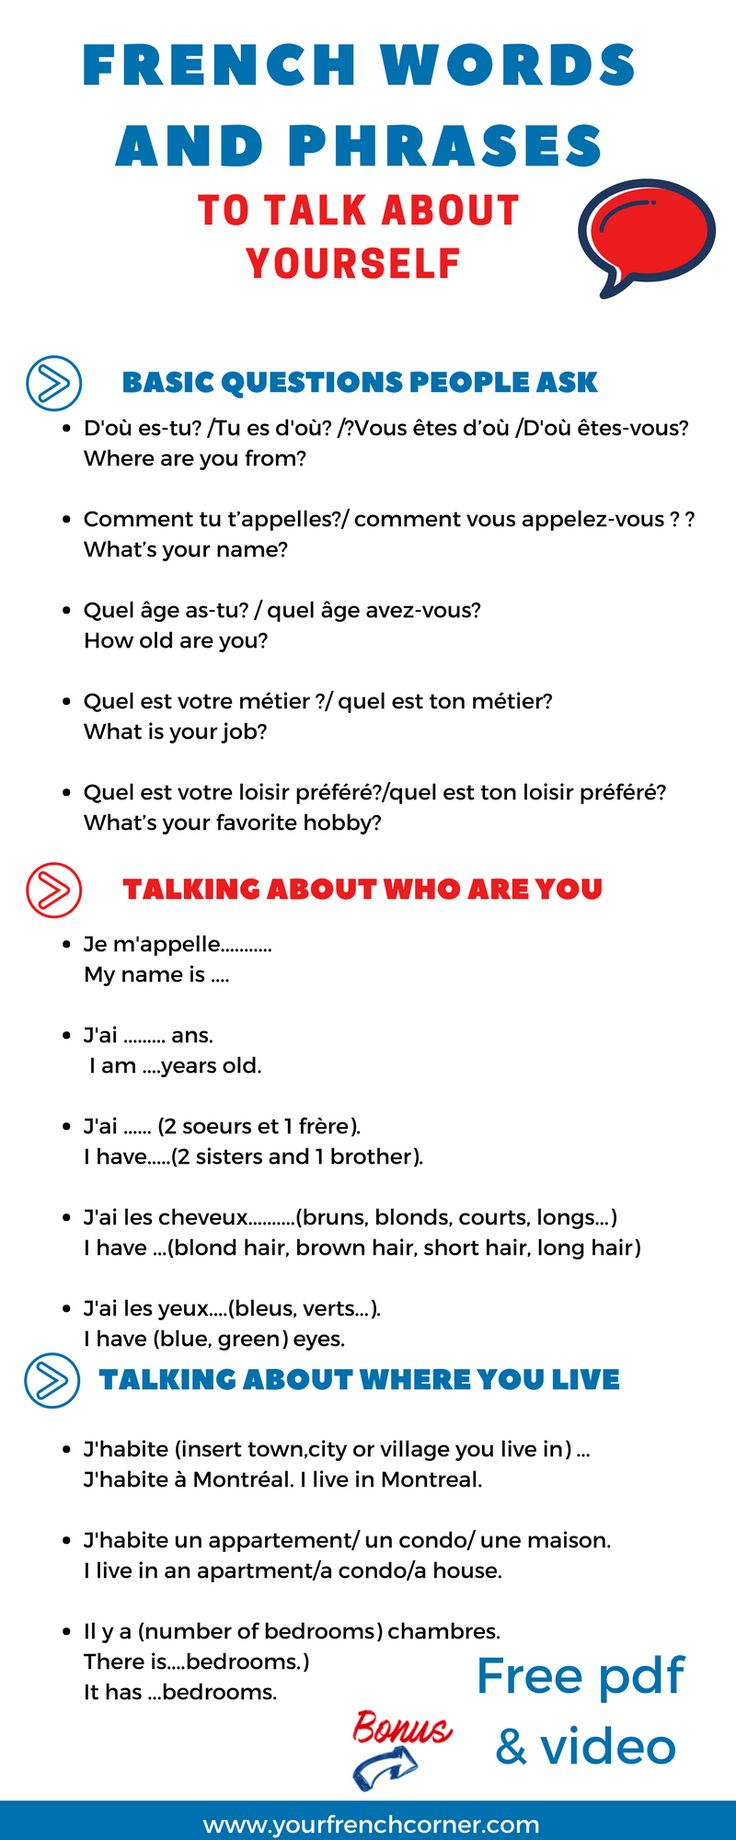 French Word For Wardrobe: 17 Best Ideas About French Kids On Pinterest